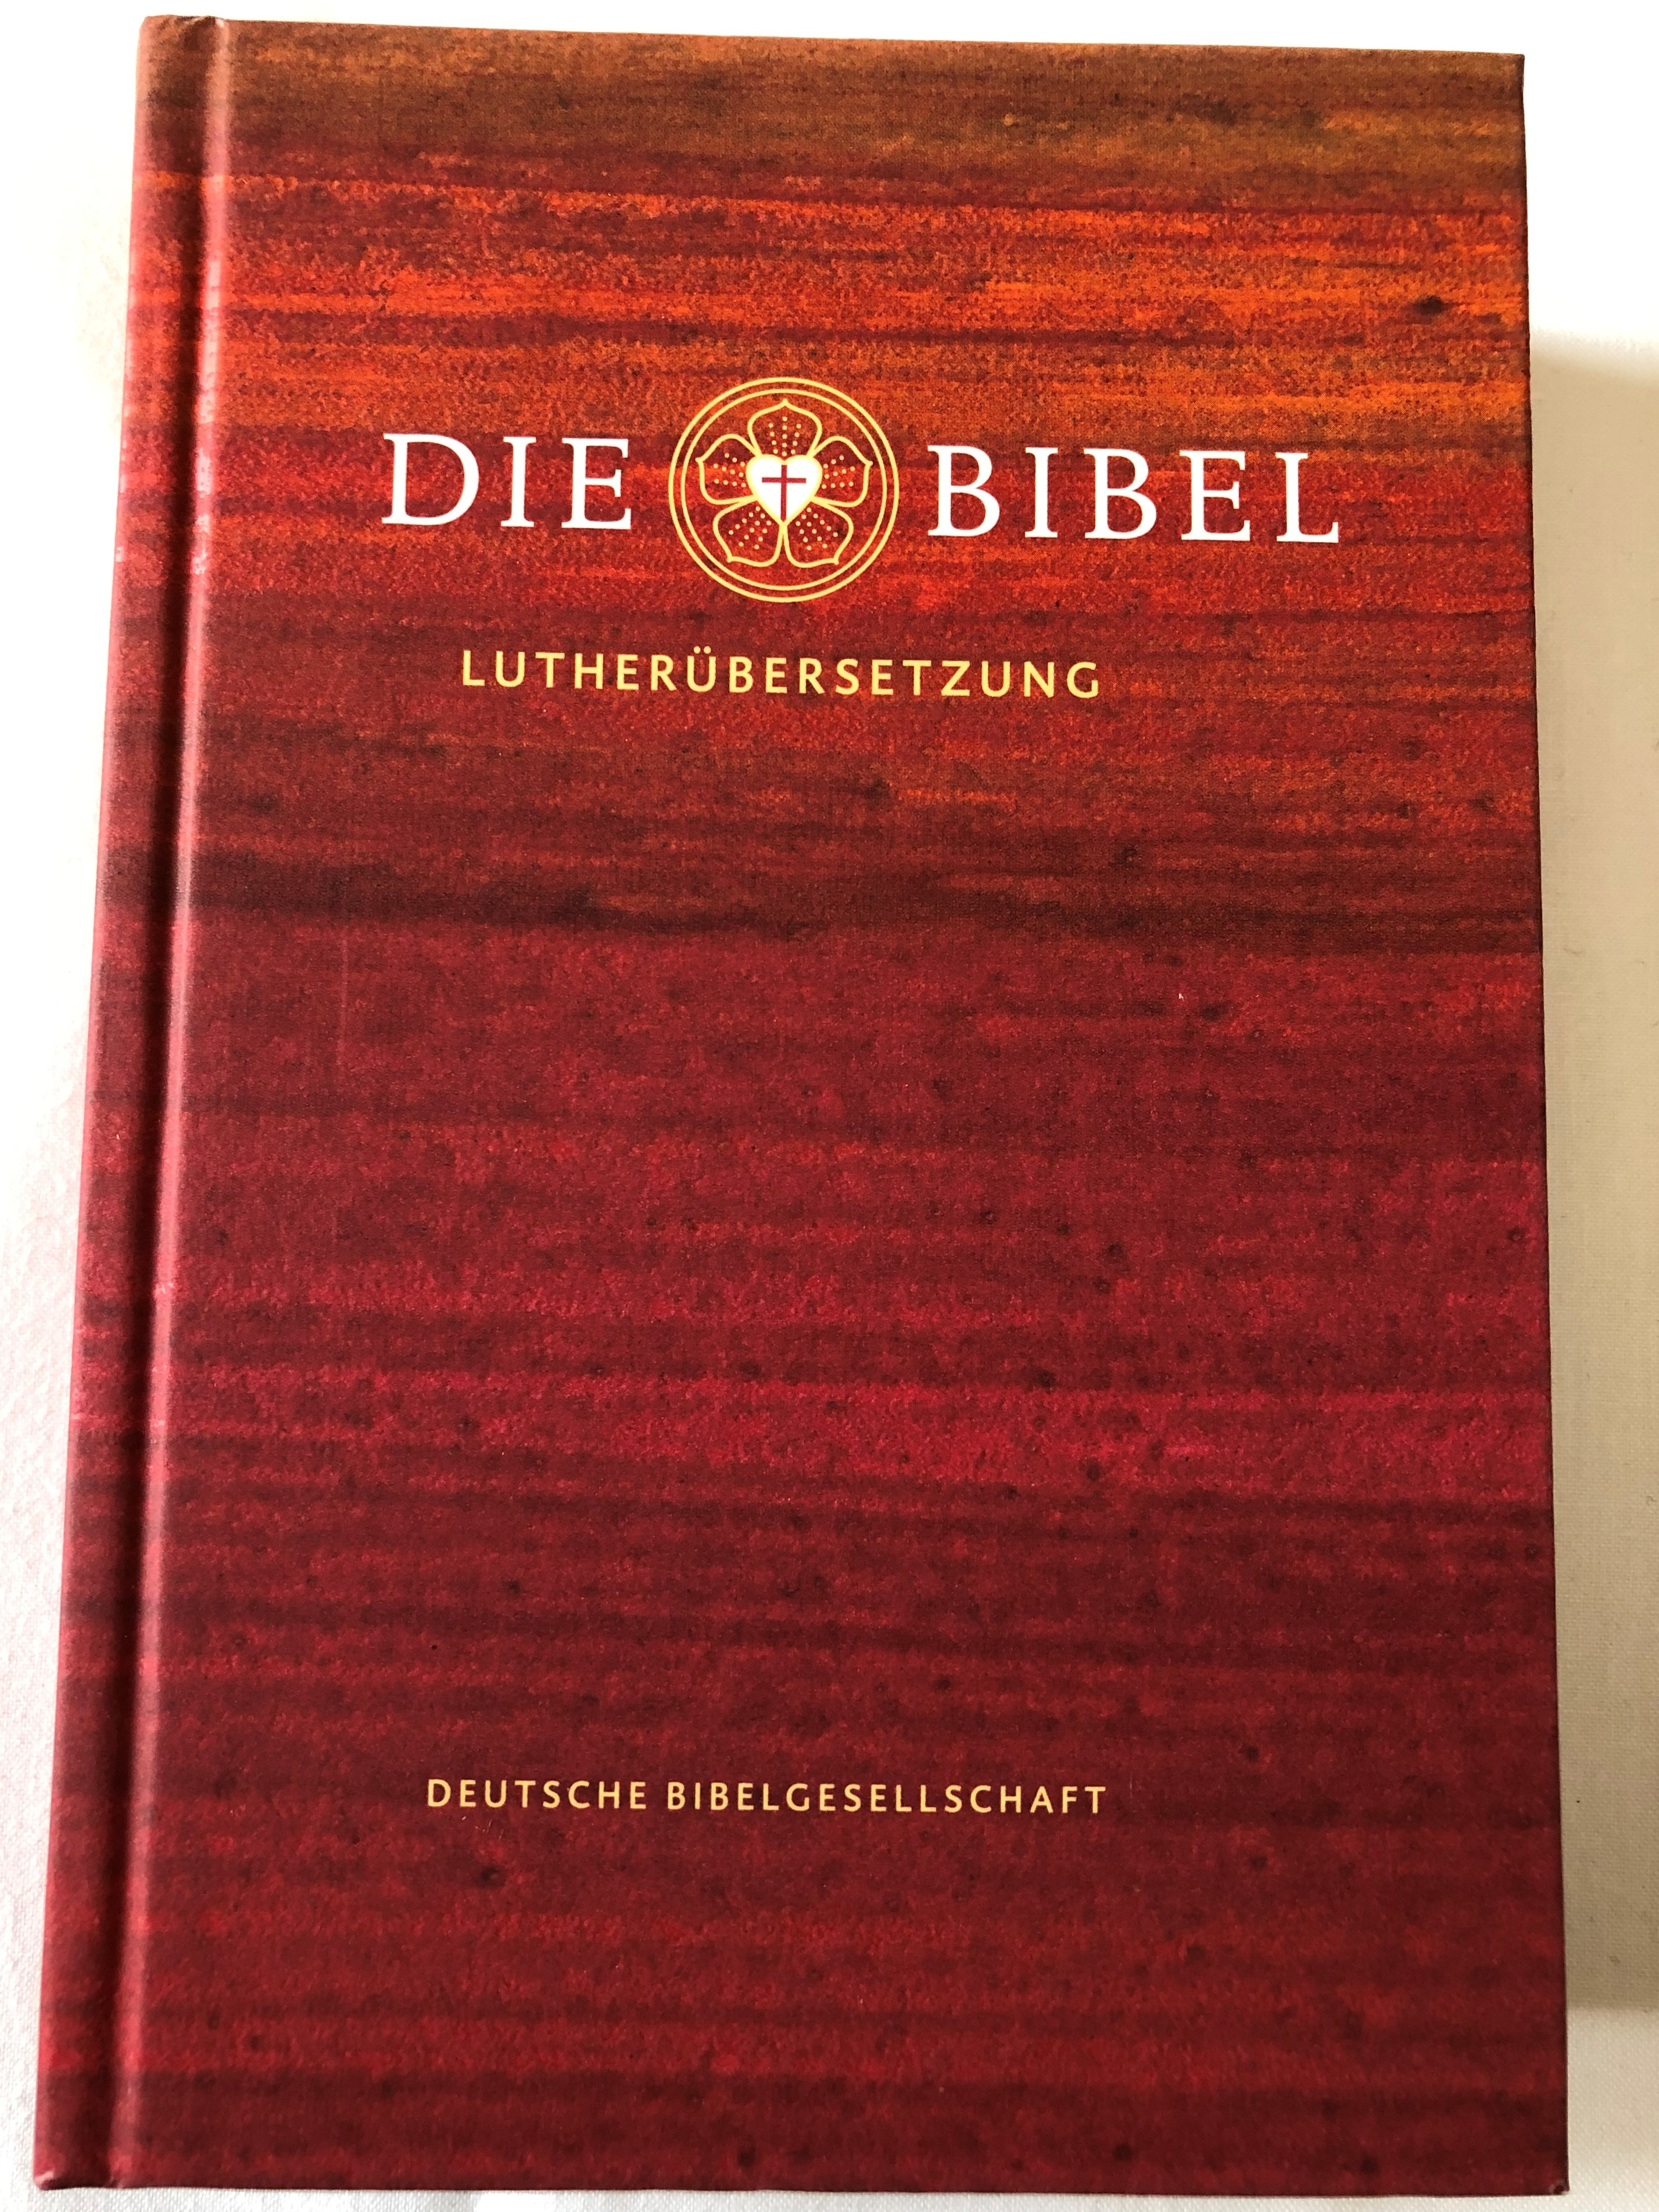 die-bibel-luther-bersetzung-schulbibel-german-language-bible-luther-translation-deutsche-bibelgesellschaft-mit-apocryphen-translation-2017-rev.-with-apocrypha-page-index-color-maps-hardcover-1-.jpg